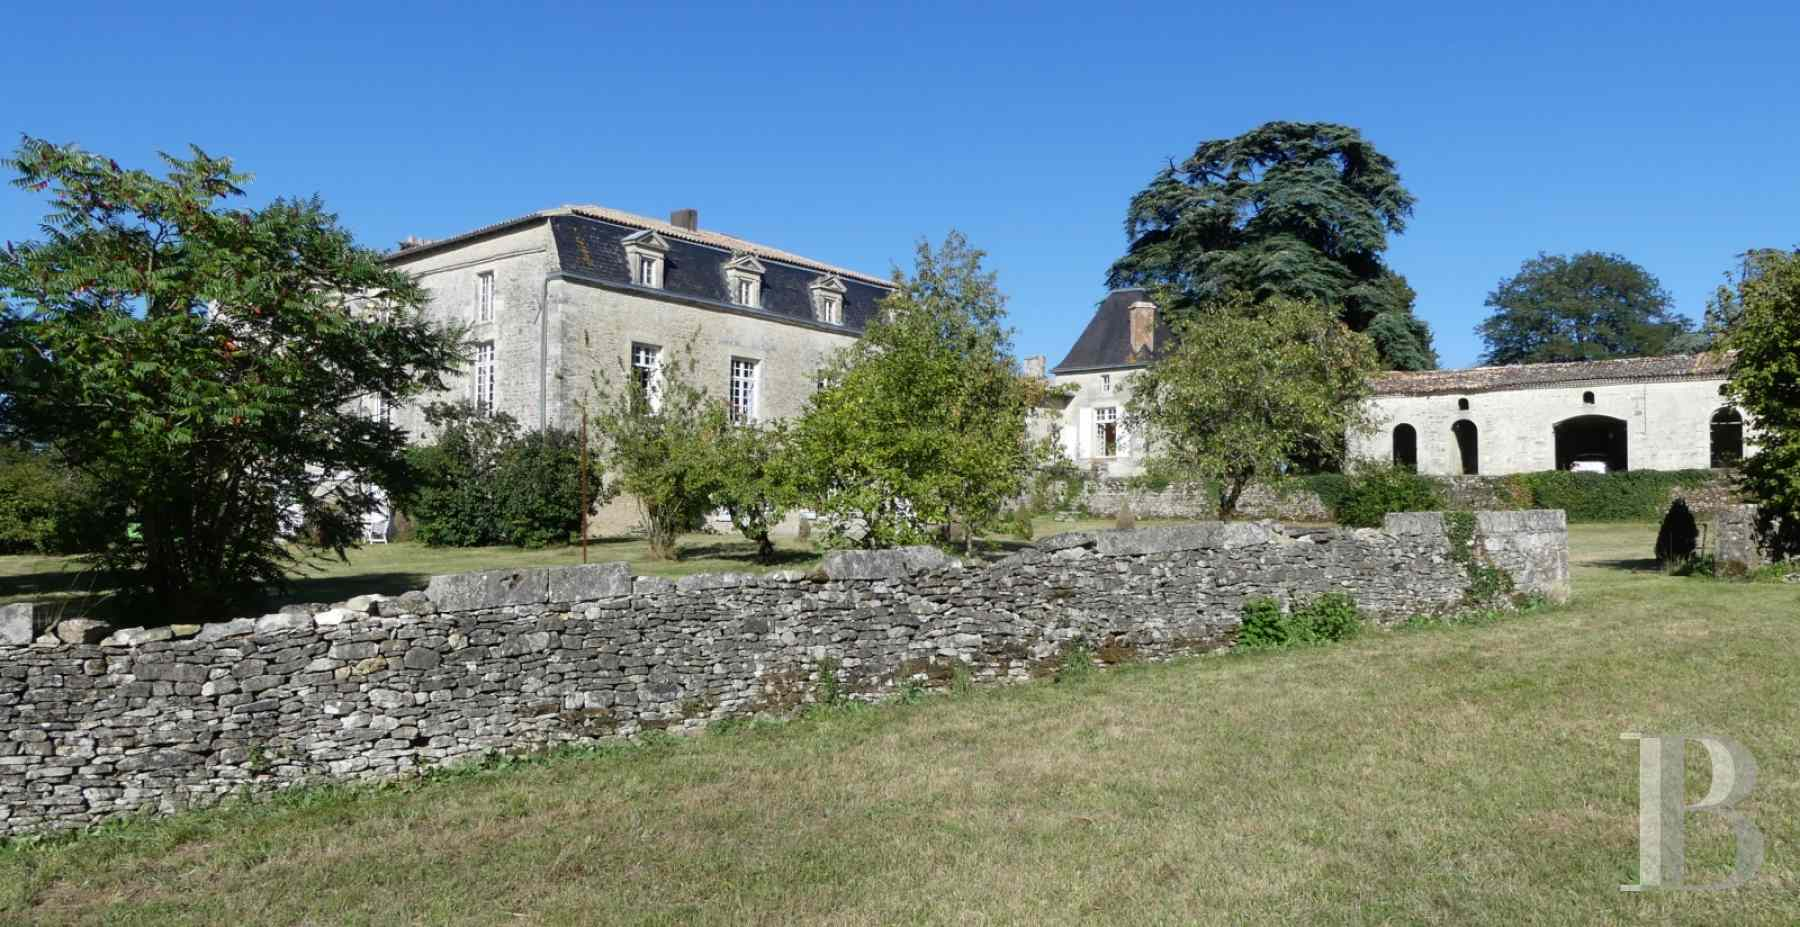 France mansions for sale poitou charentes 18th century - 6 zoom